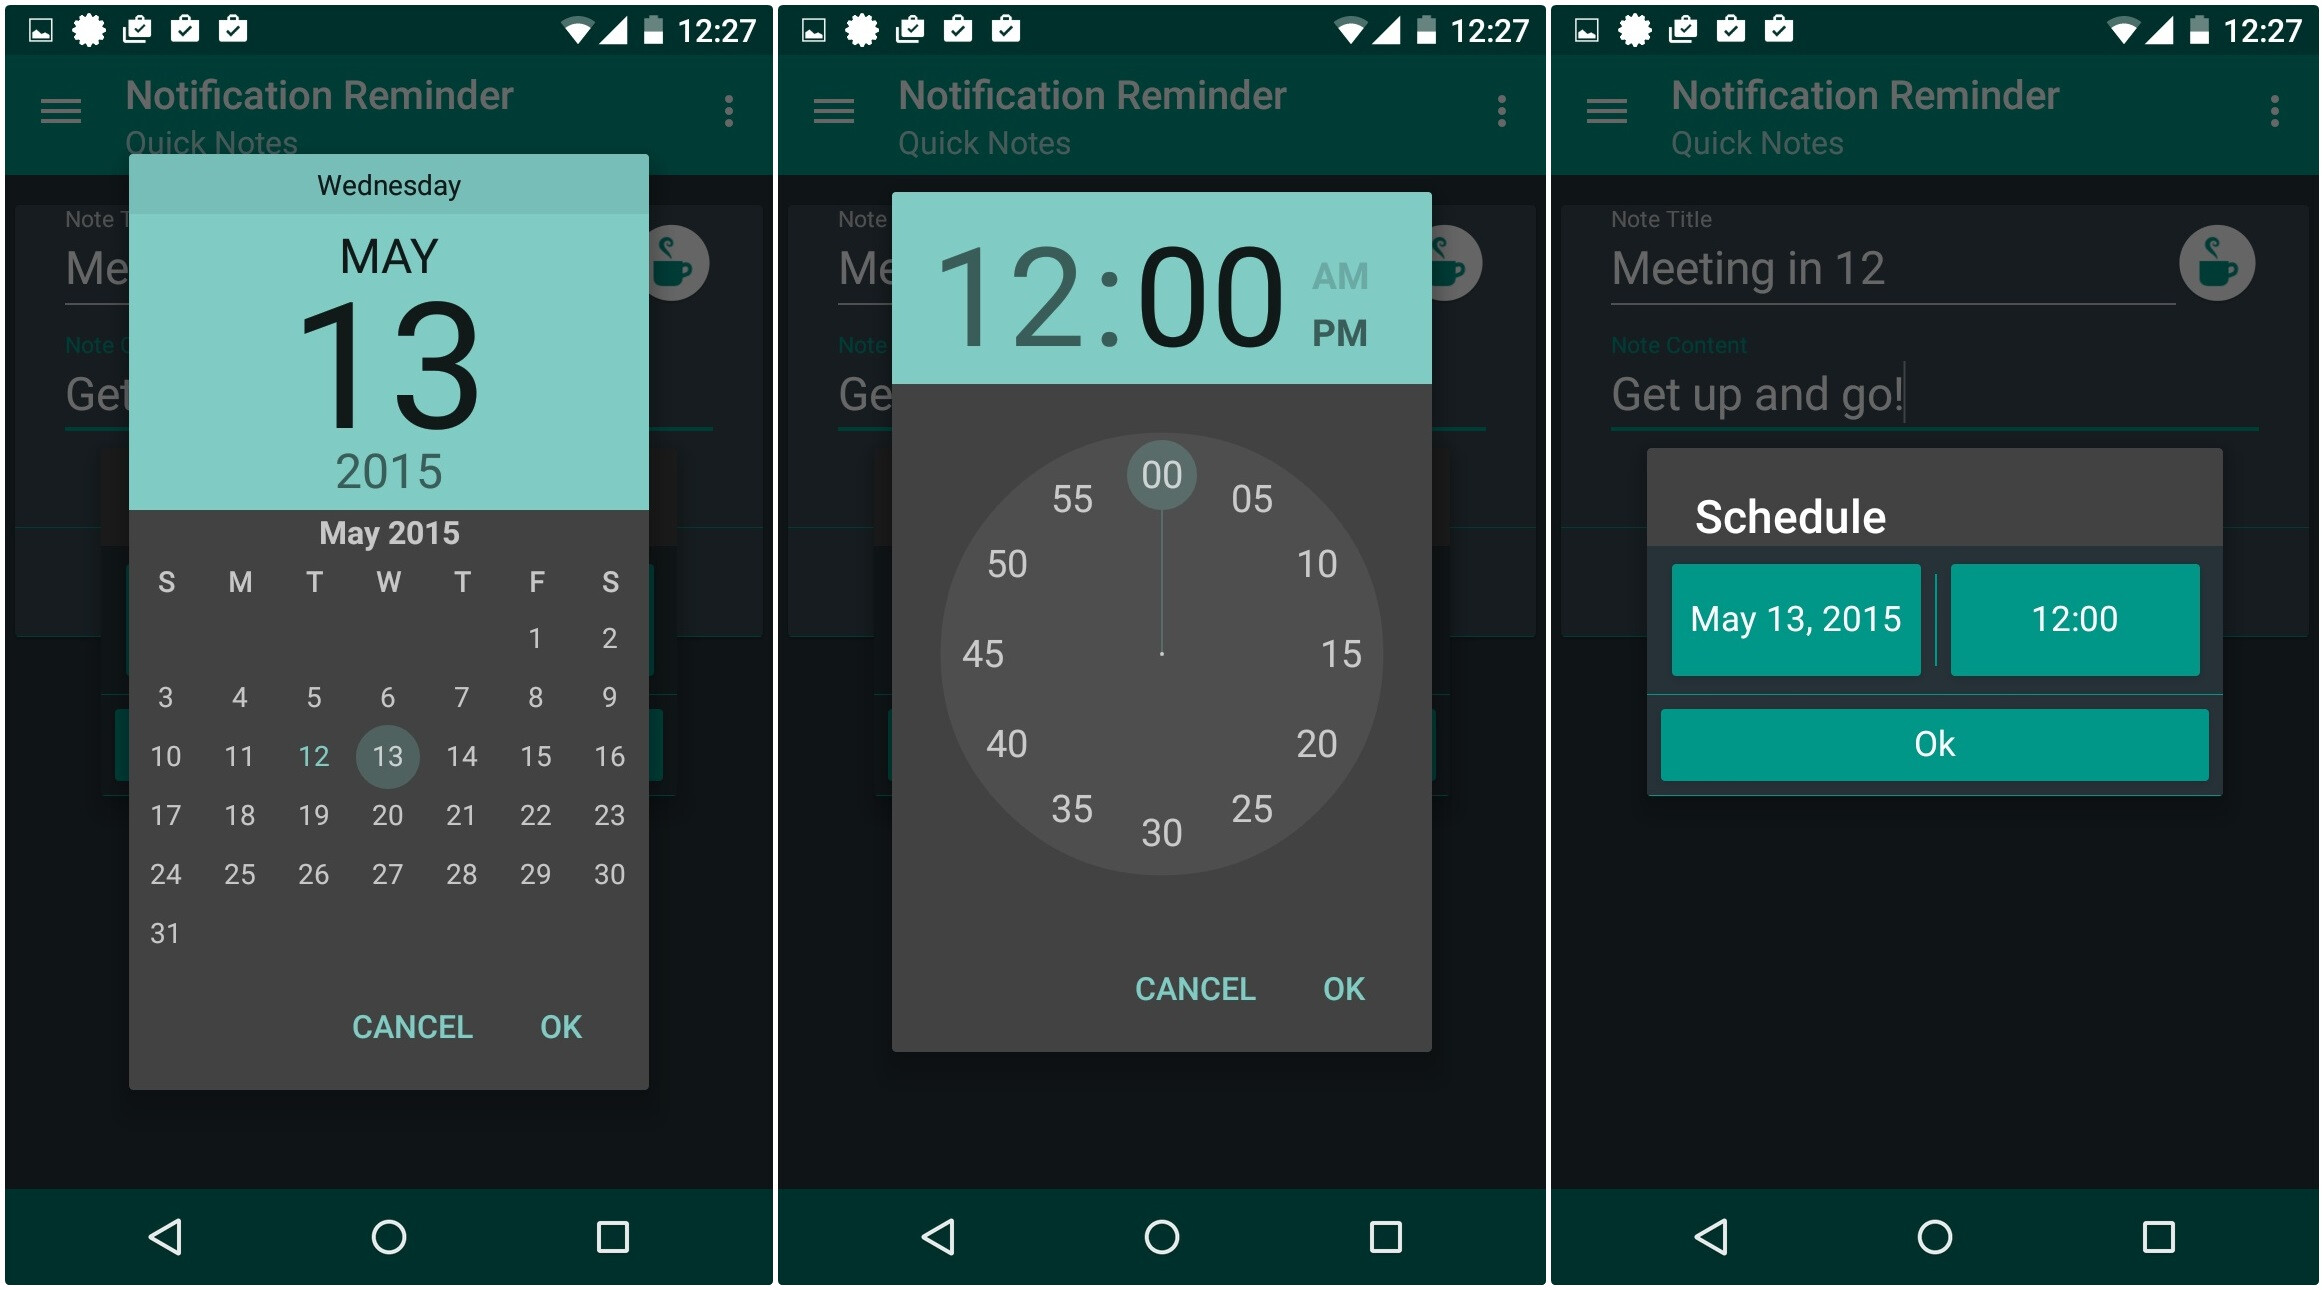 How to add quick, glanceable notification reminders on Android